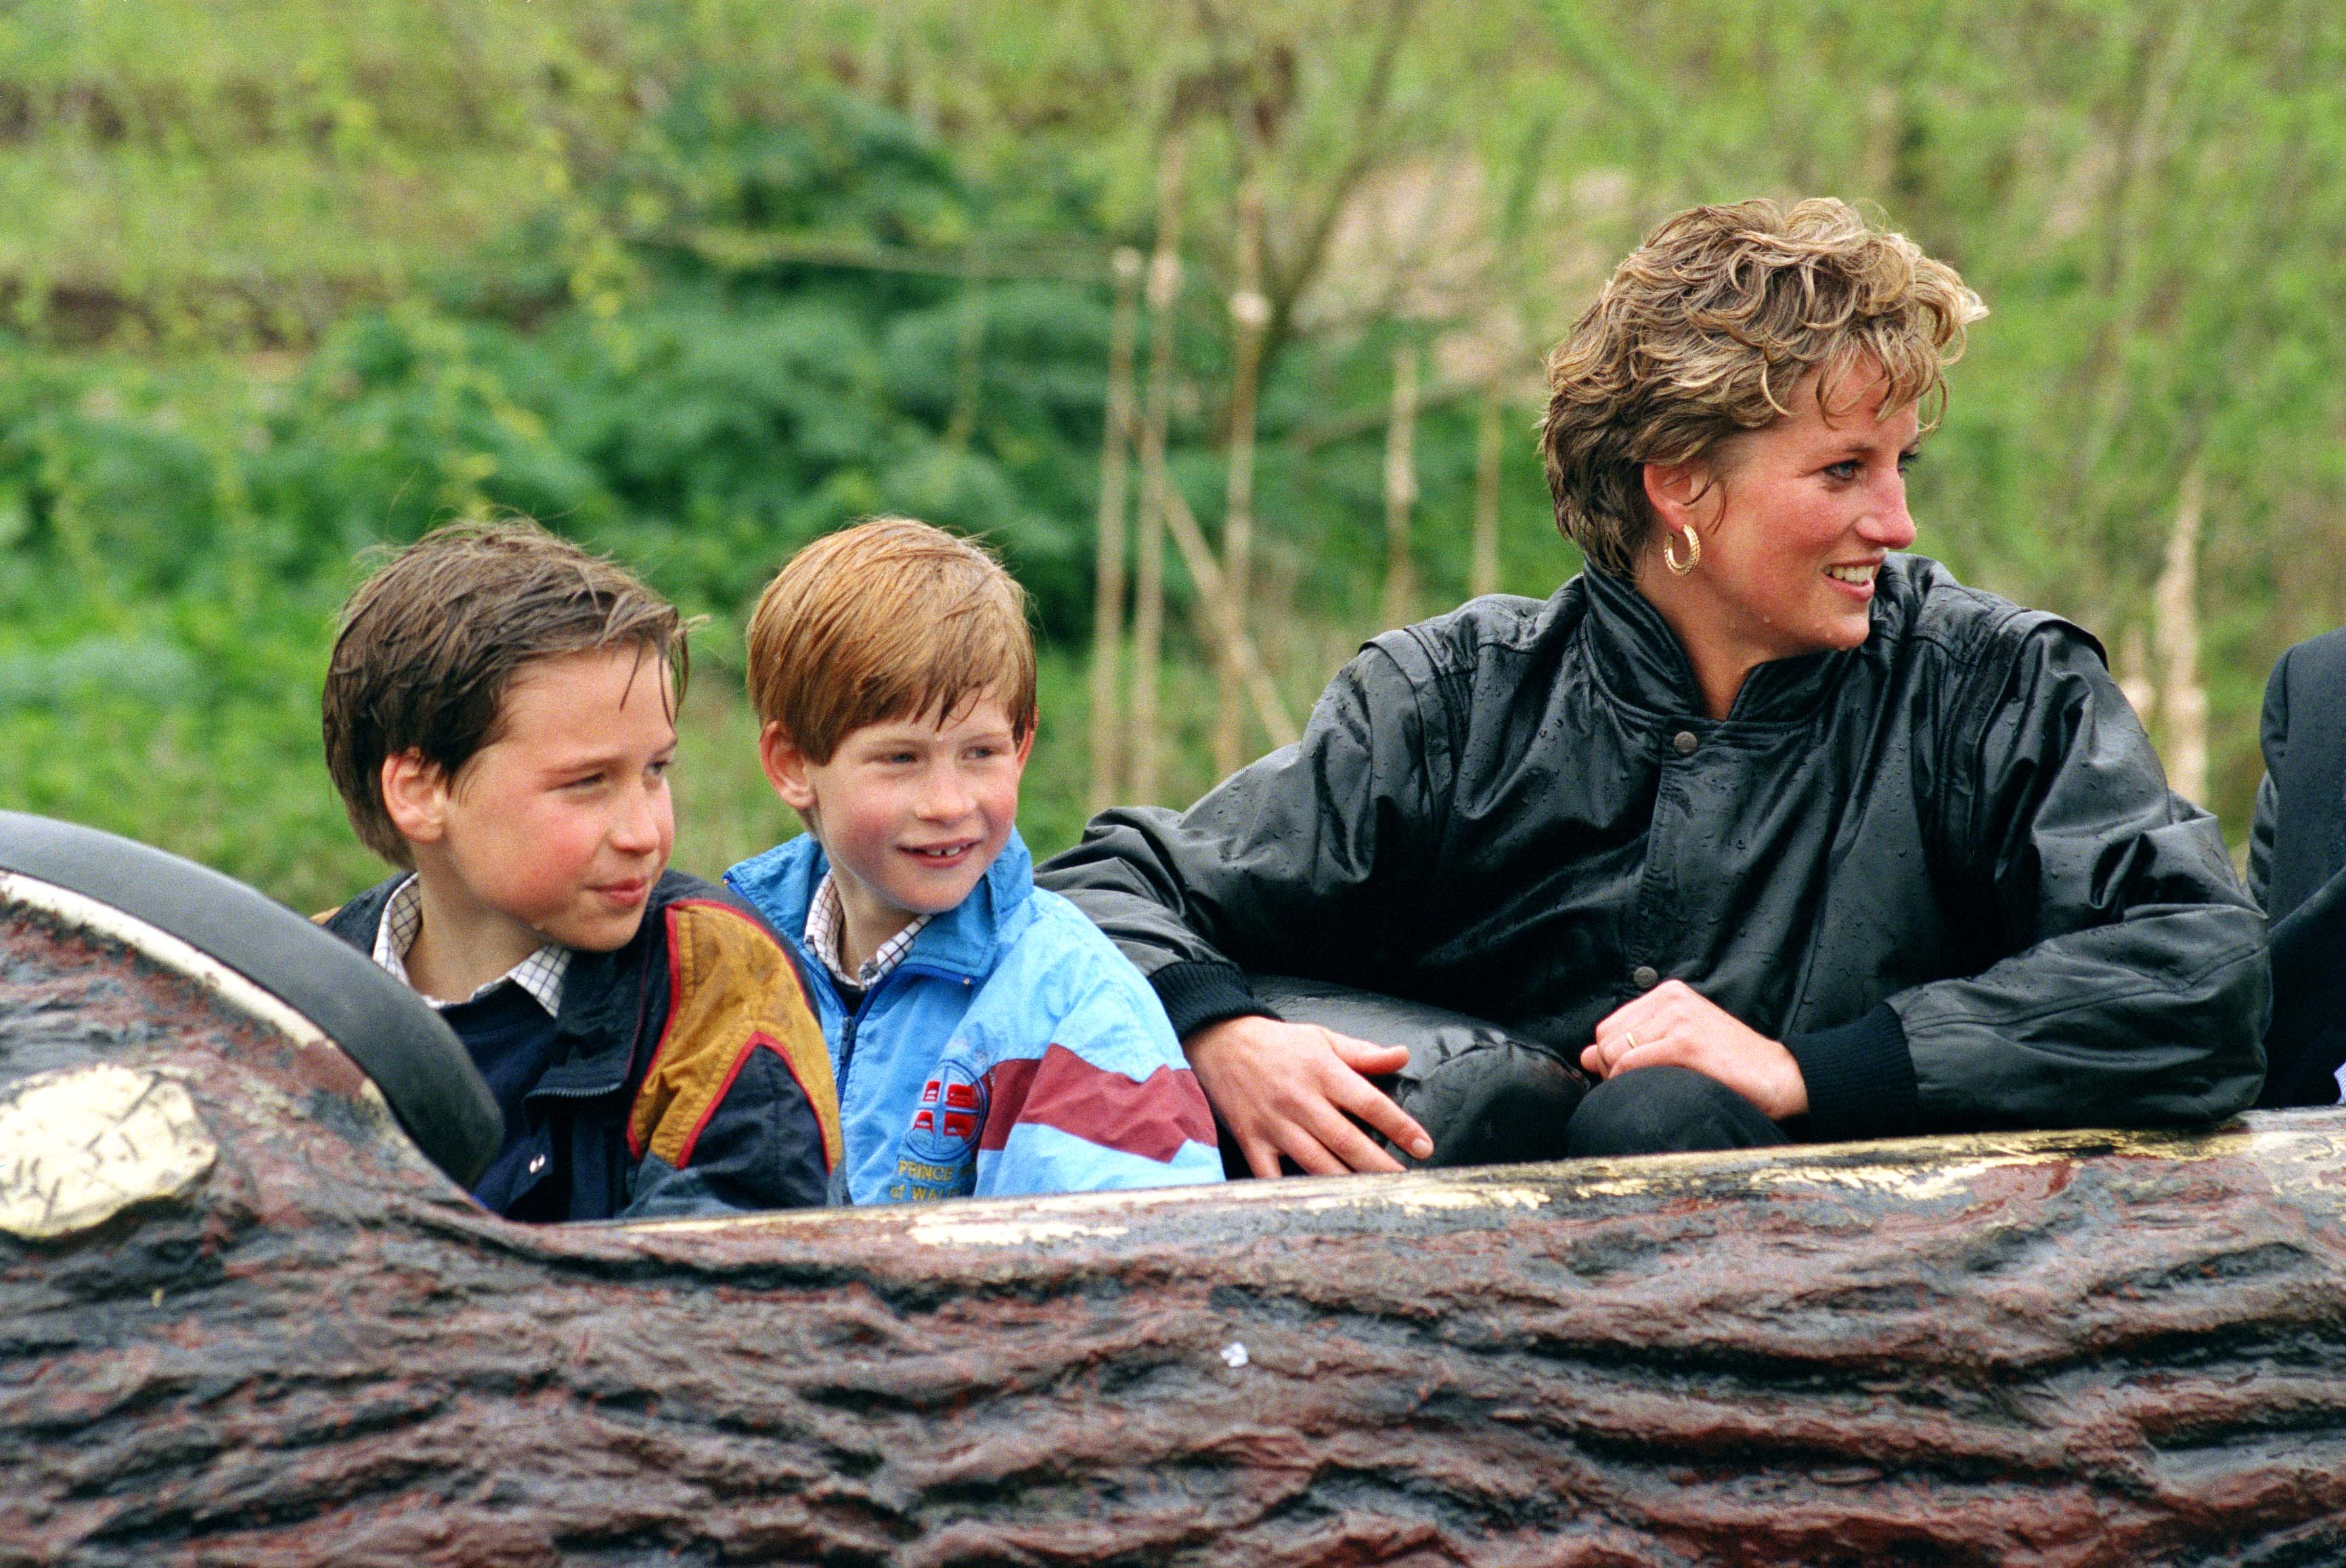 Image Credits: Getty Images | Princess Diana Enjoys Theme Park Ride With William and Harry